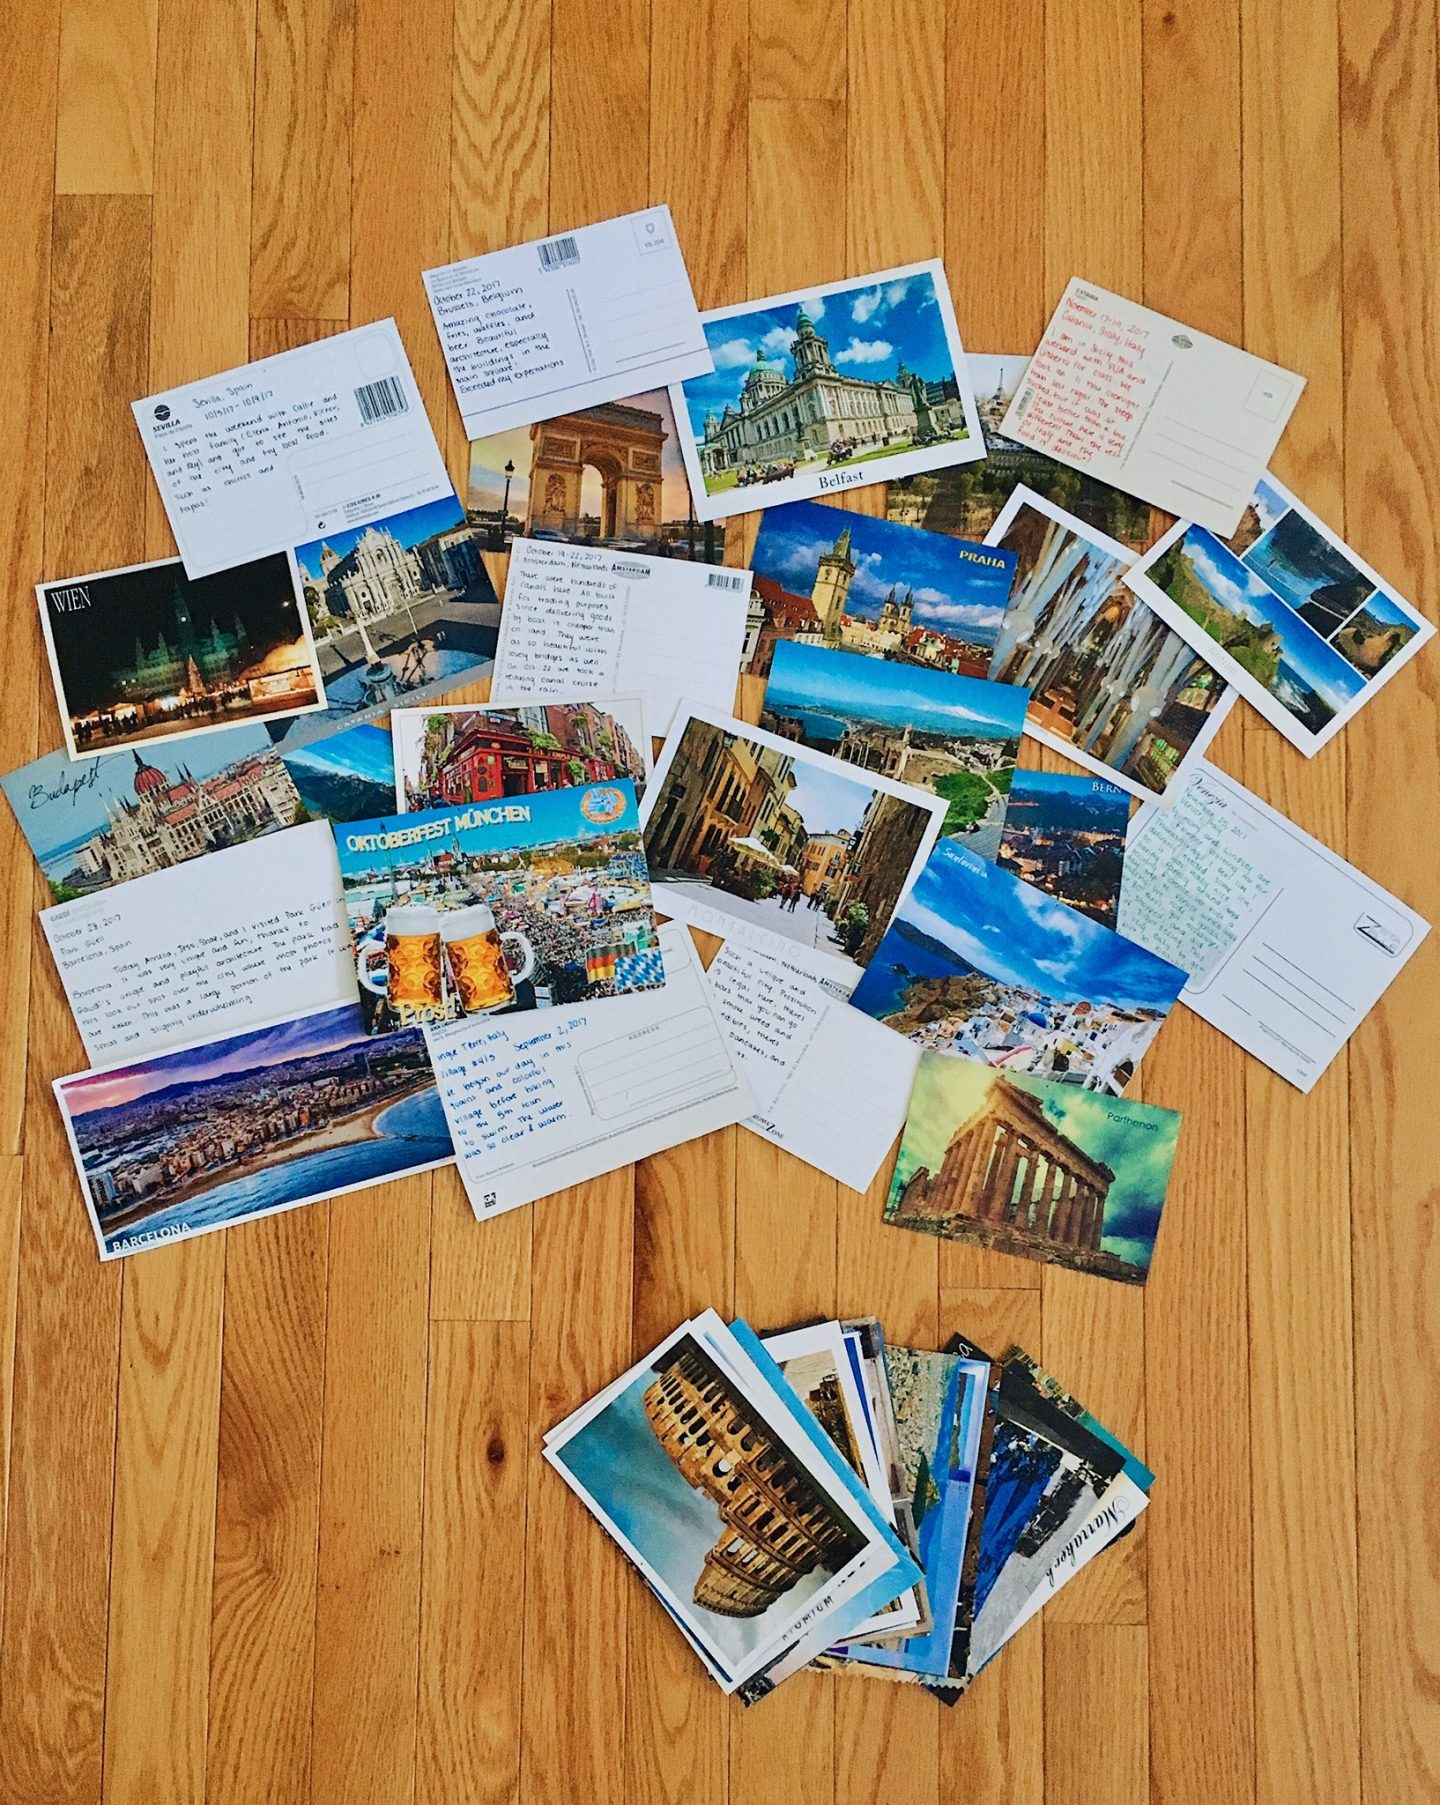 My postcards with handwritten messages on the back after a semester abroad in Florence